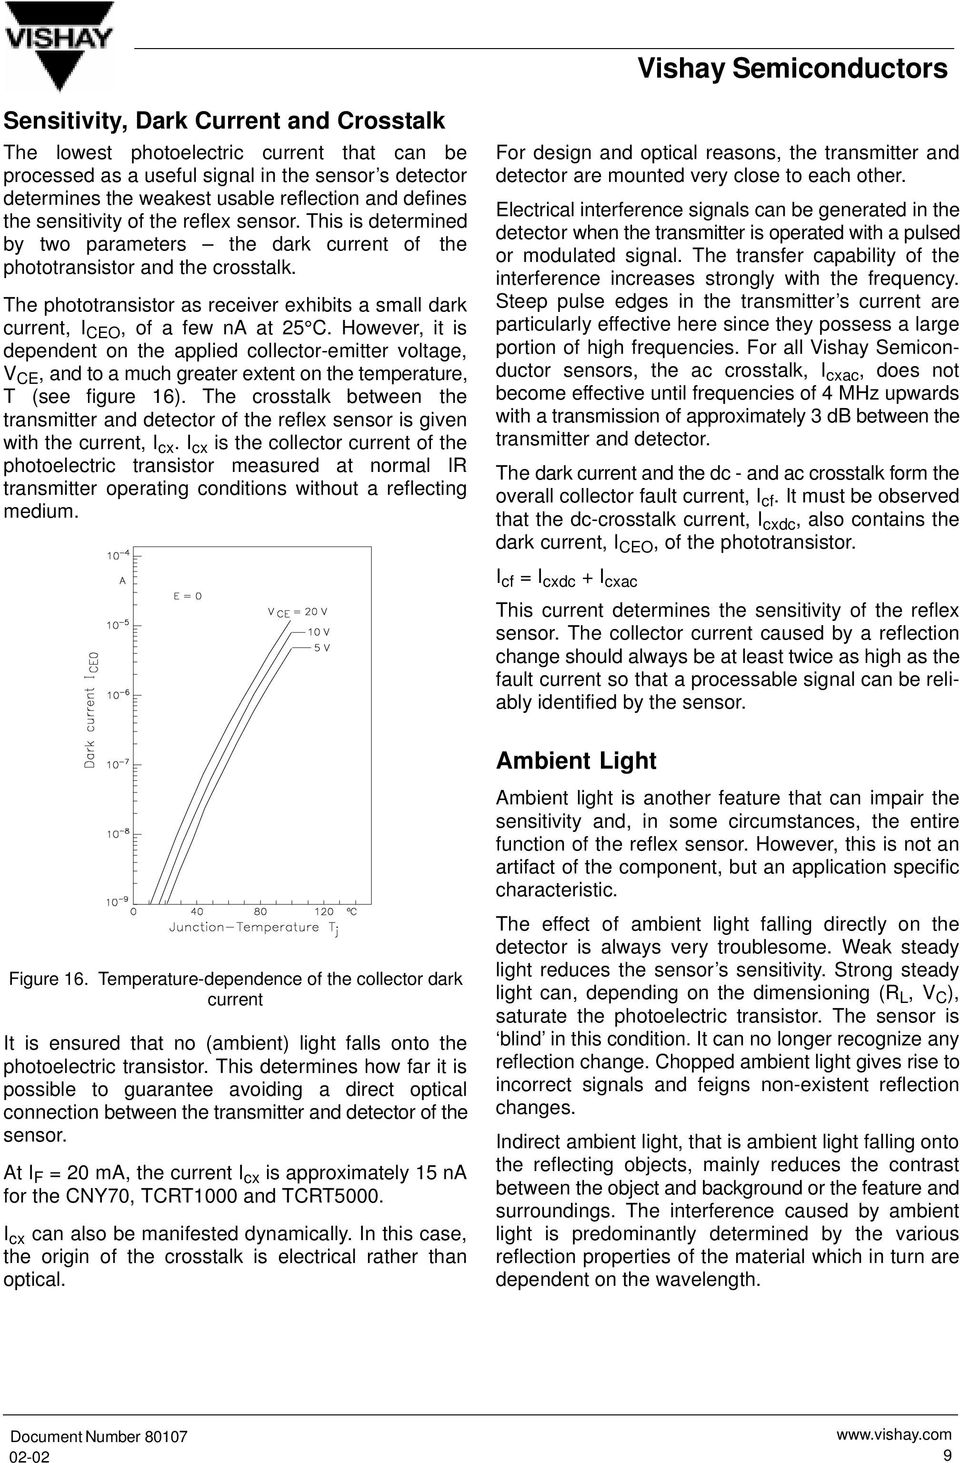 Application Of Optical Reflex Sensors Pdf Low Power Interrupter Modulated Light Received The Phototransistor As Receiver Exhibits A Small Dark Current I Ceo Few